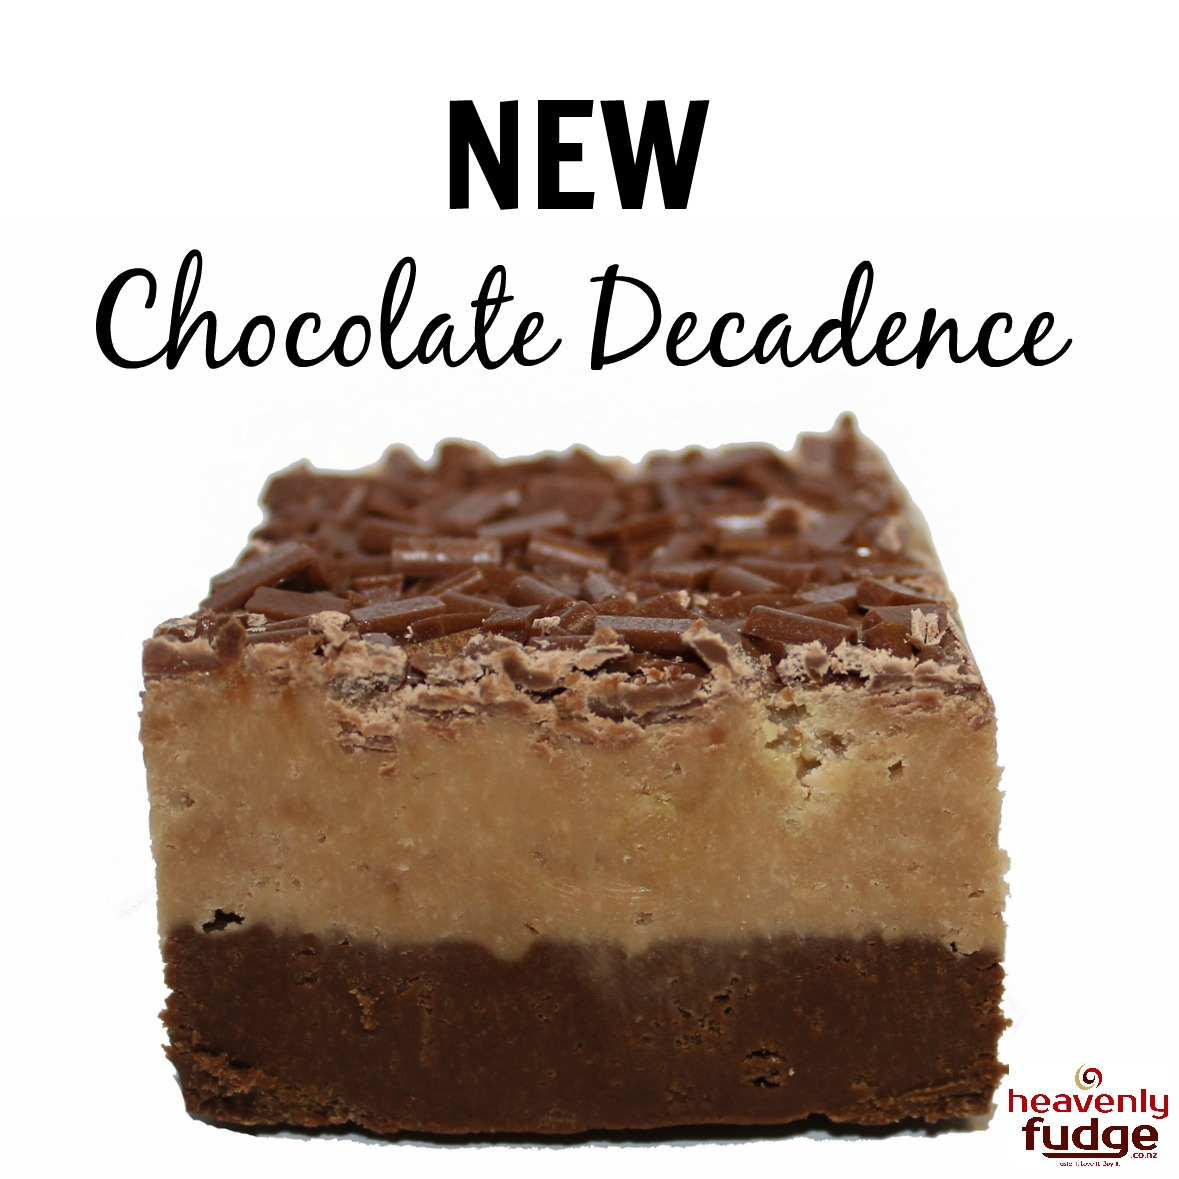 NEW! Chocolate Decadence